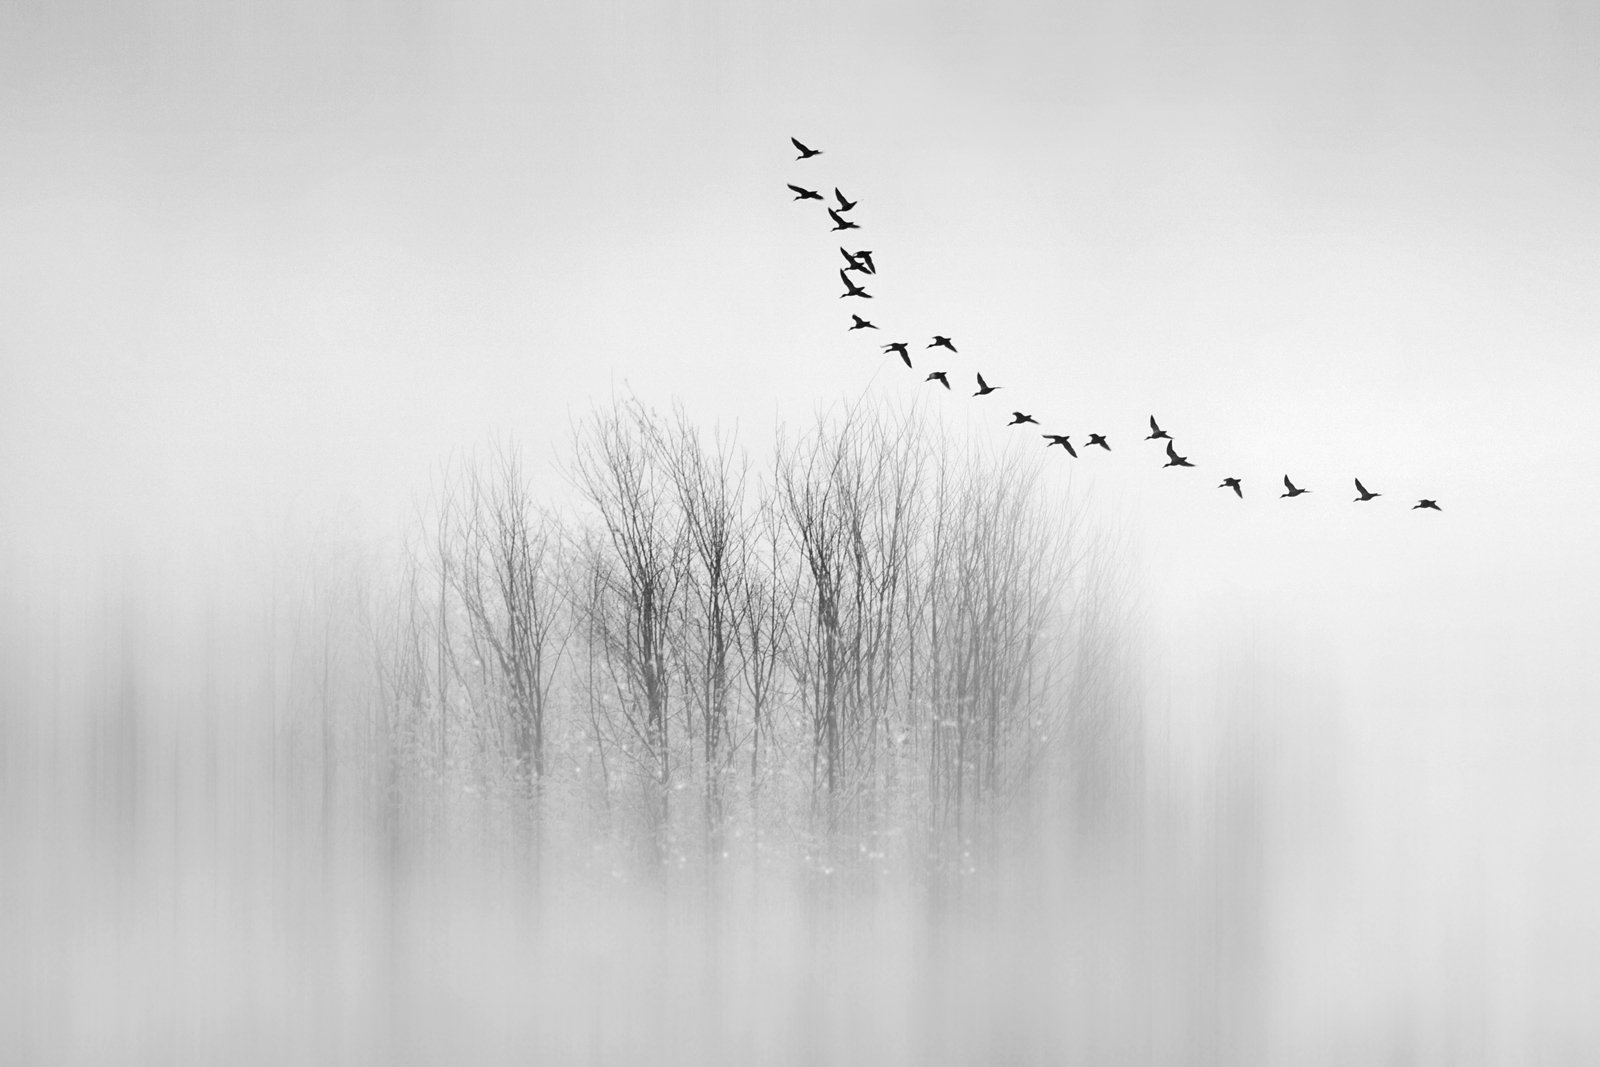 minimal, birds, black and white, trees, fog, Gina Bochis